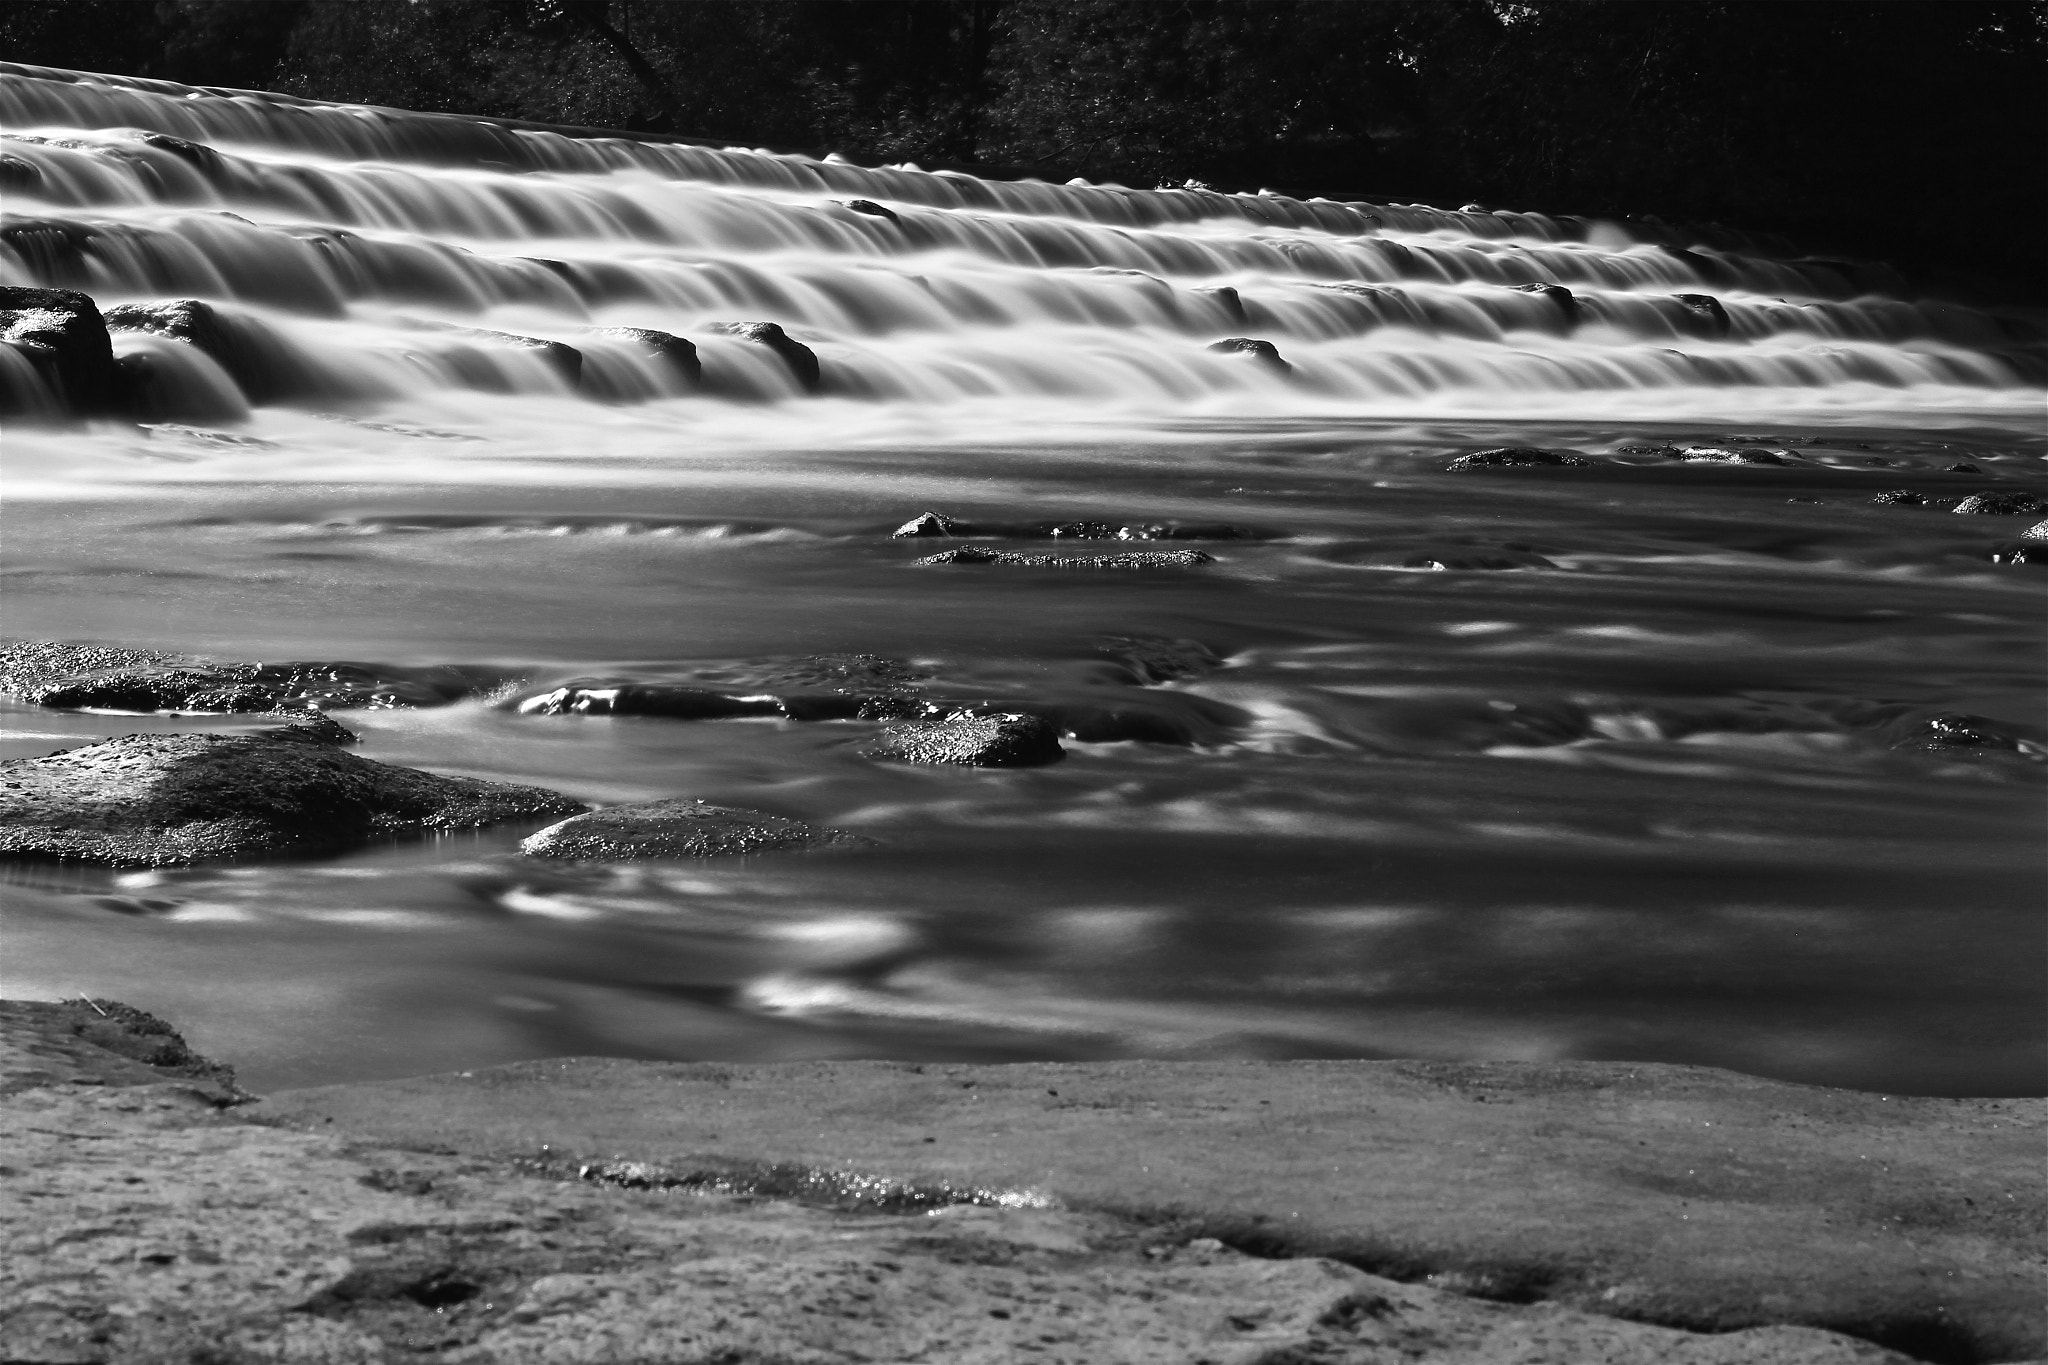 Photograph River Weir by Tom Forbes on 500px